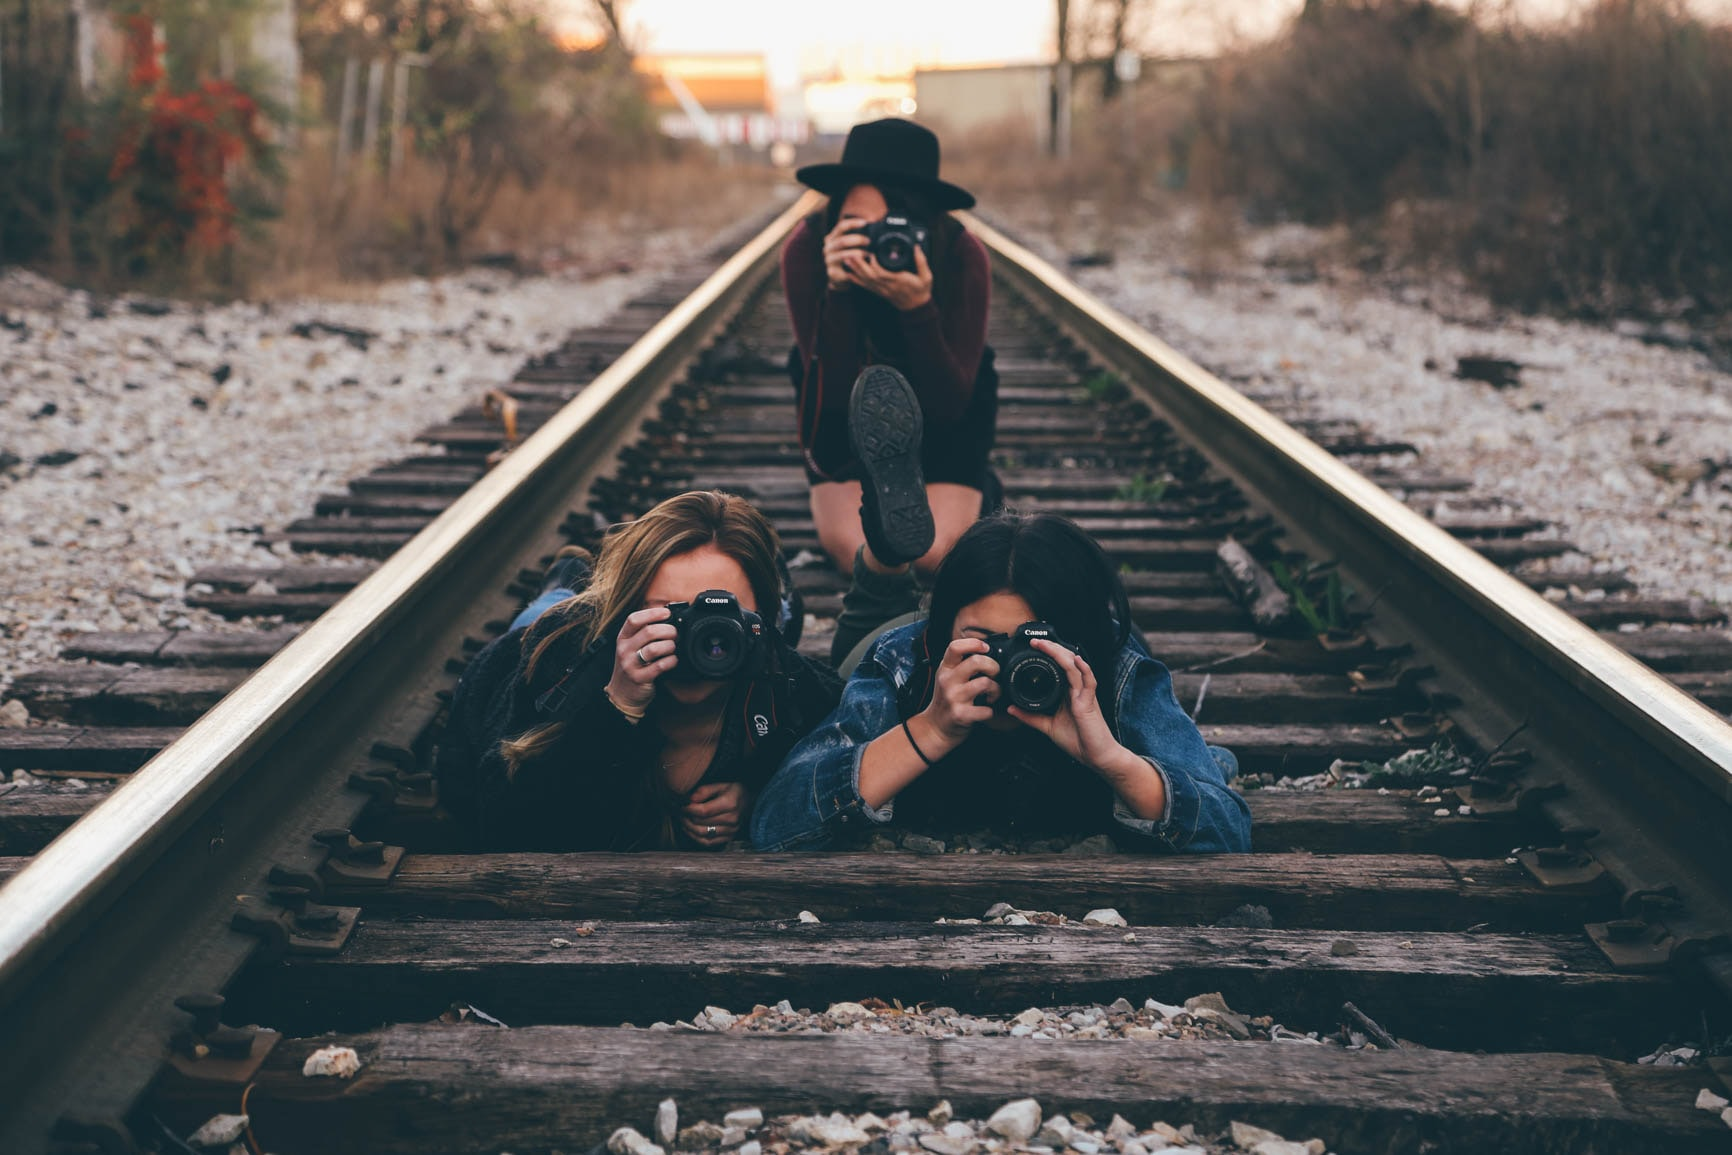 Three young women with cameras taking a photo while on a railroad track